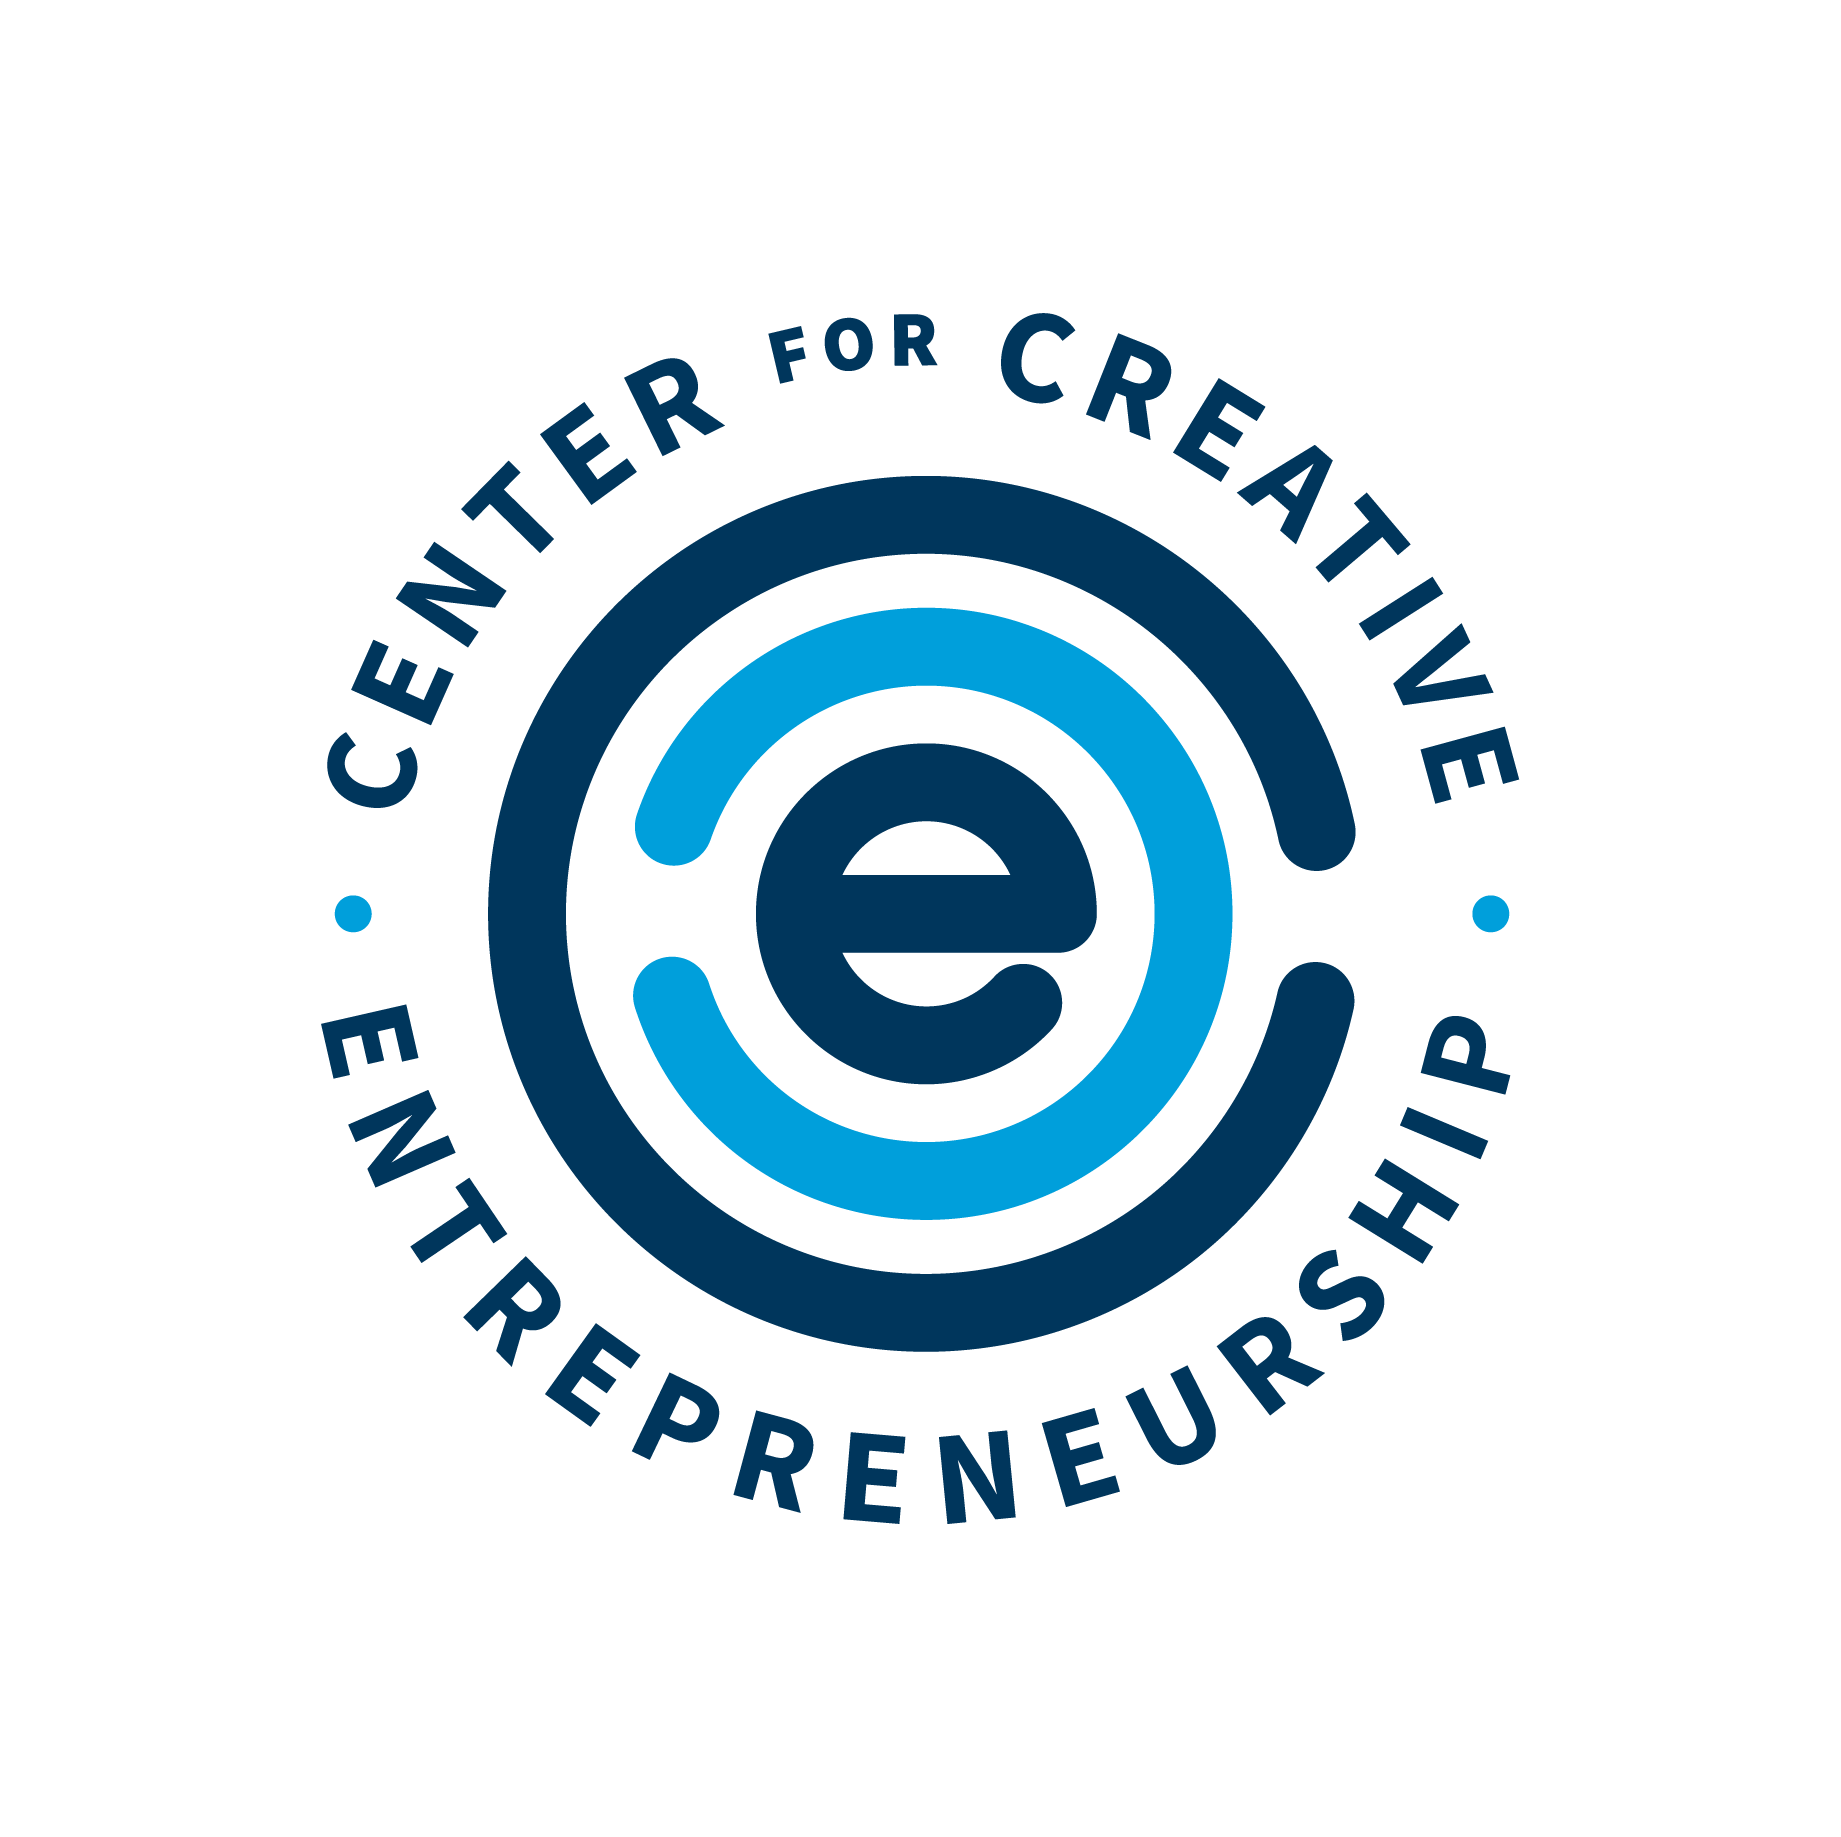 Center for Creative Entrepreneurship